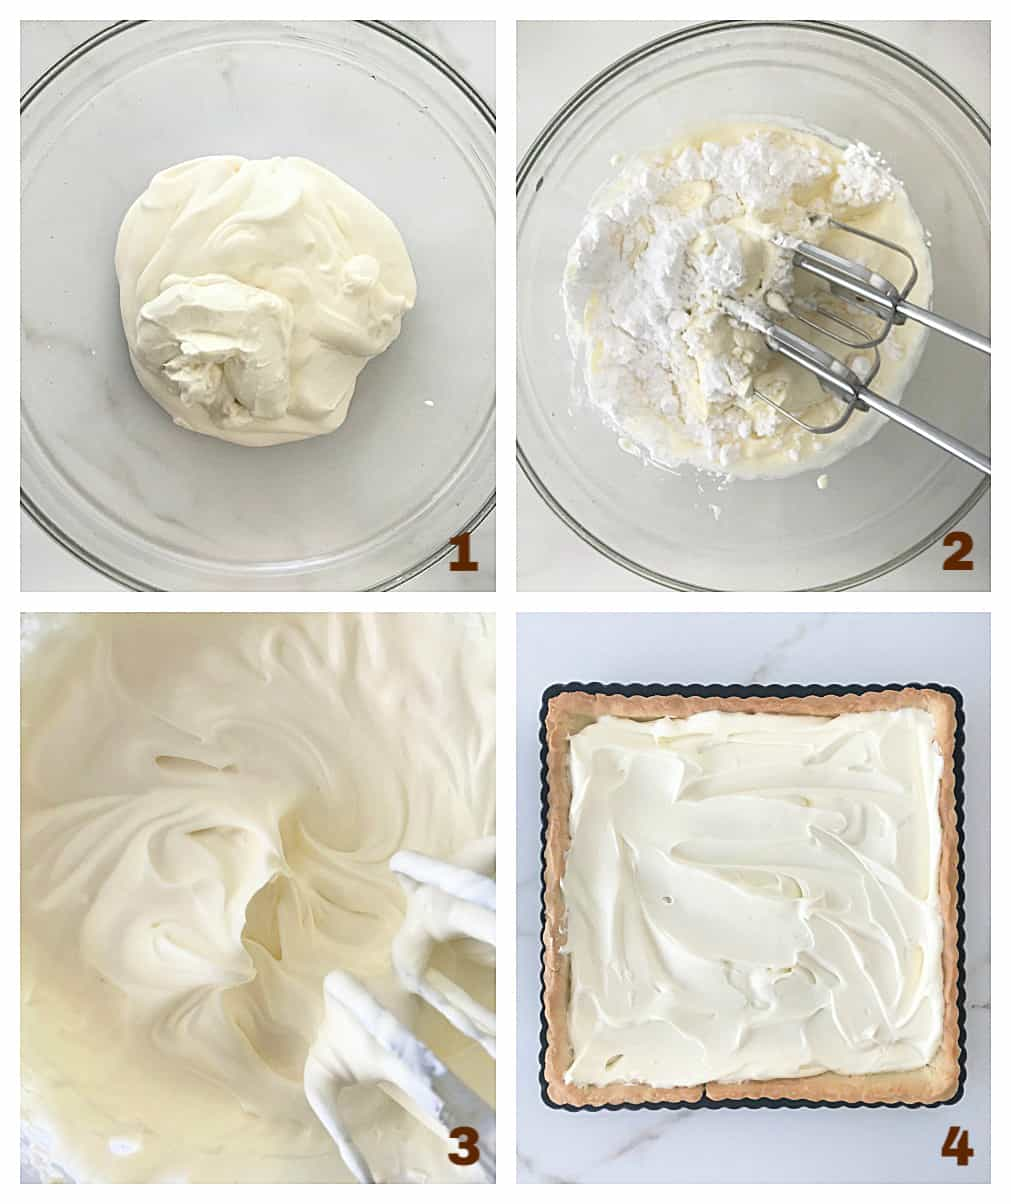 Image collage: glass bowl with cream and sugar, beaten whipped cream, and tart shell with cream